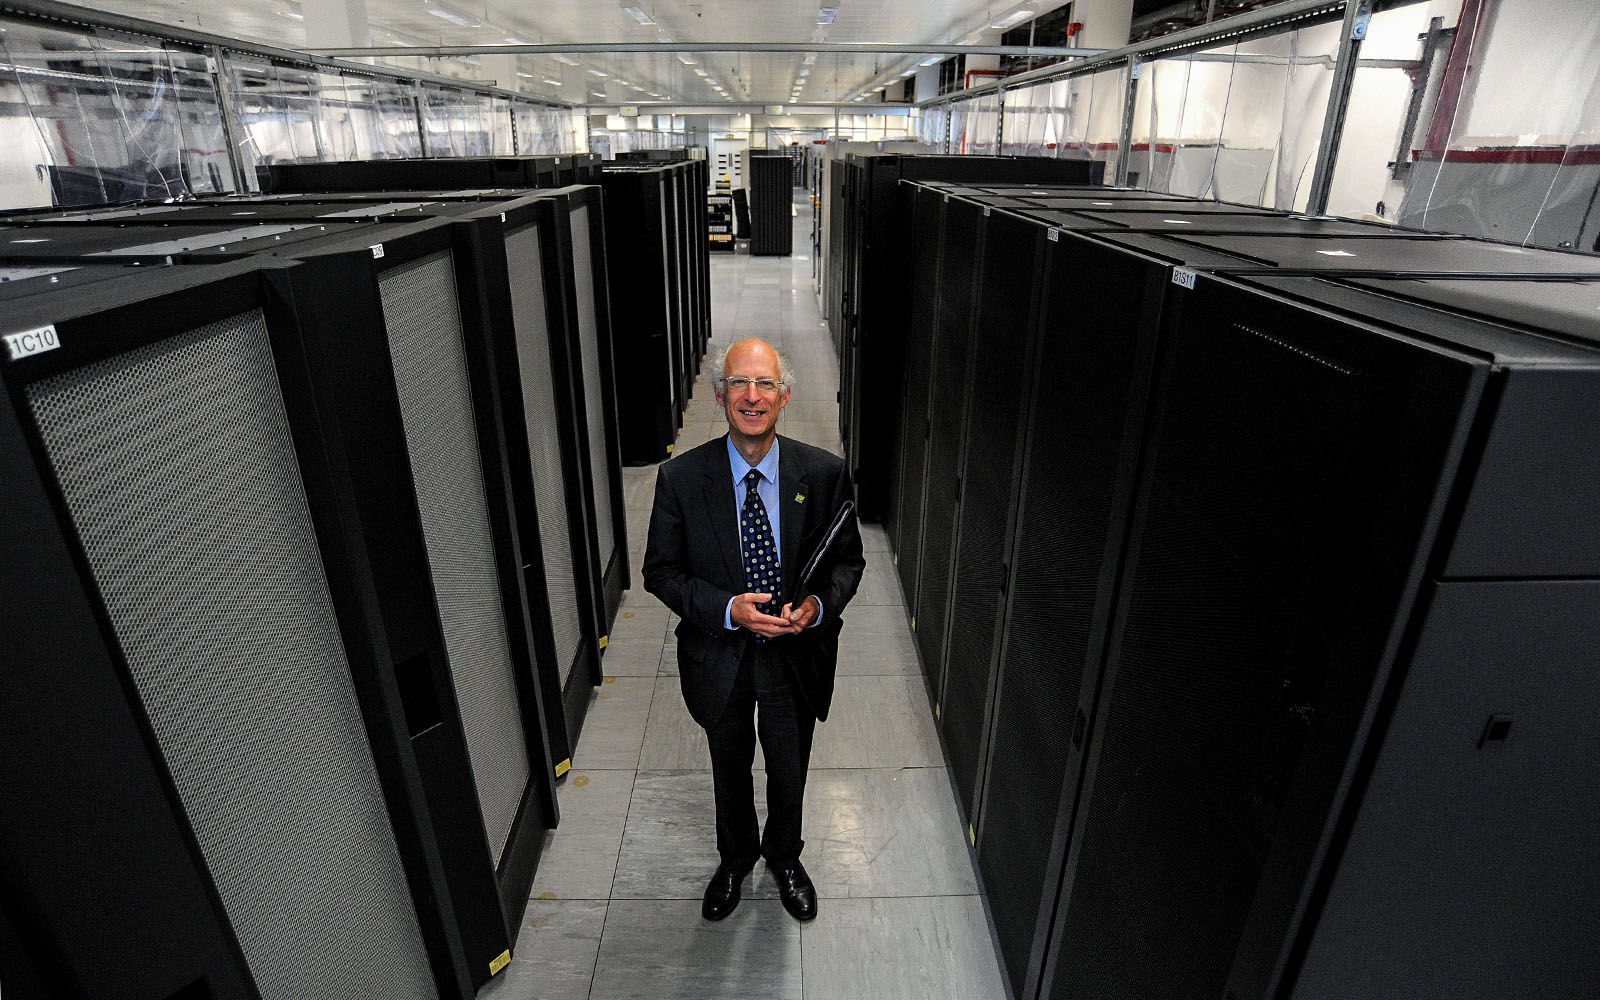 Prof. Brian Golding - Deputy Director of Weather Science at the Met Office, with the IBM P6 supercomputer